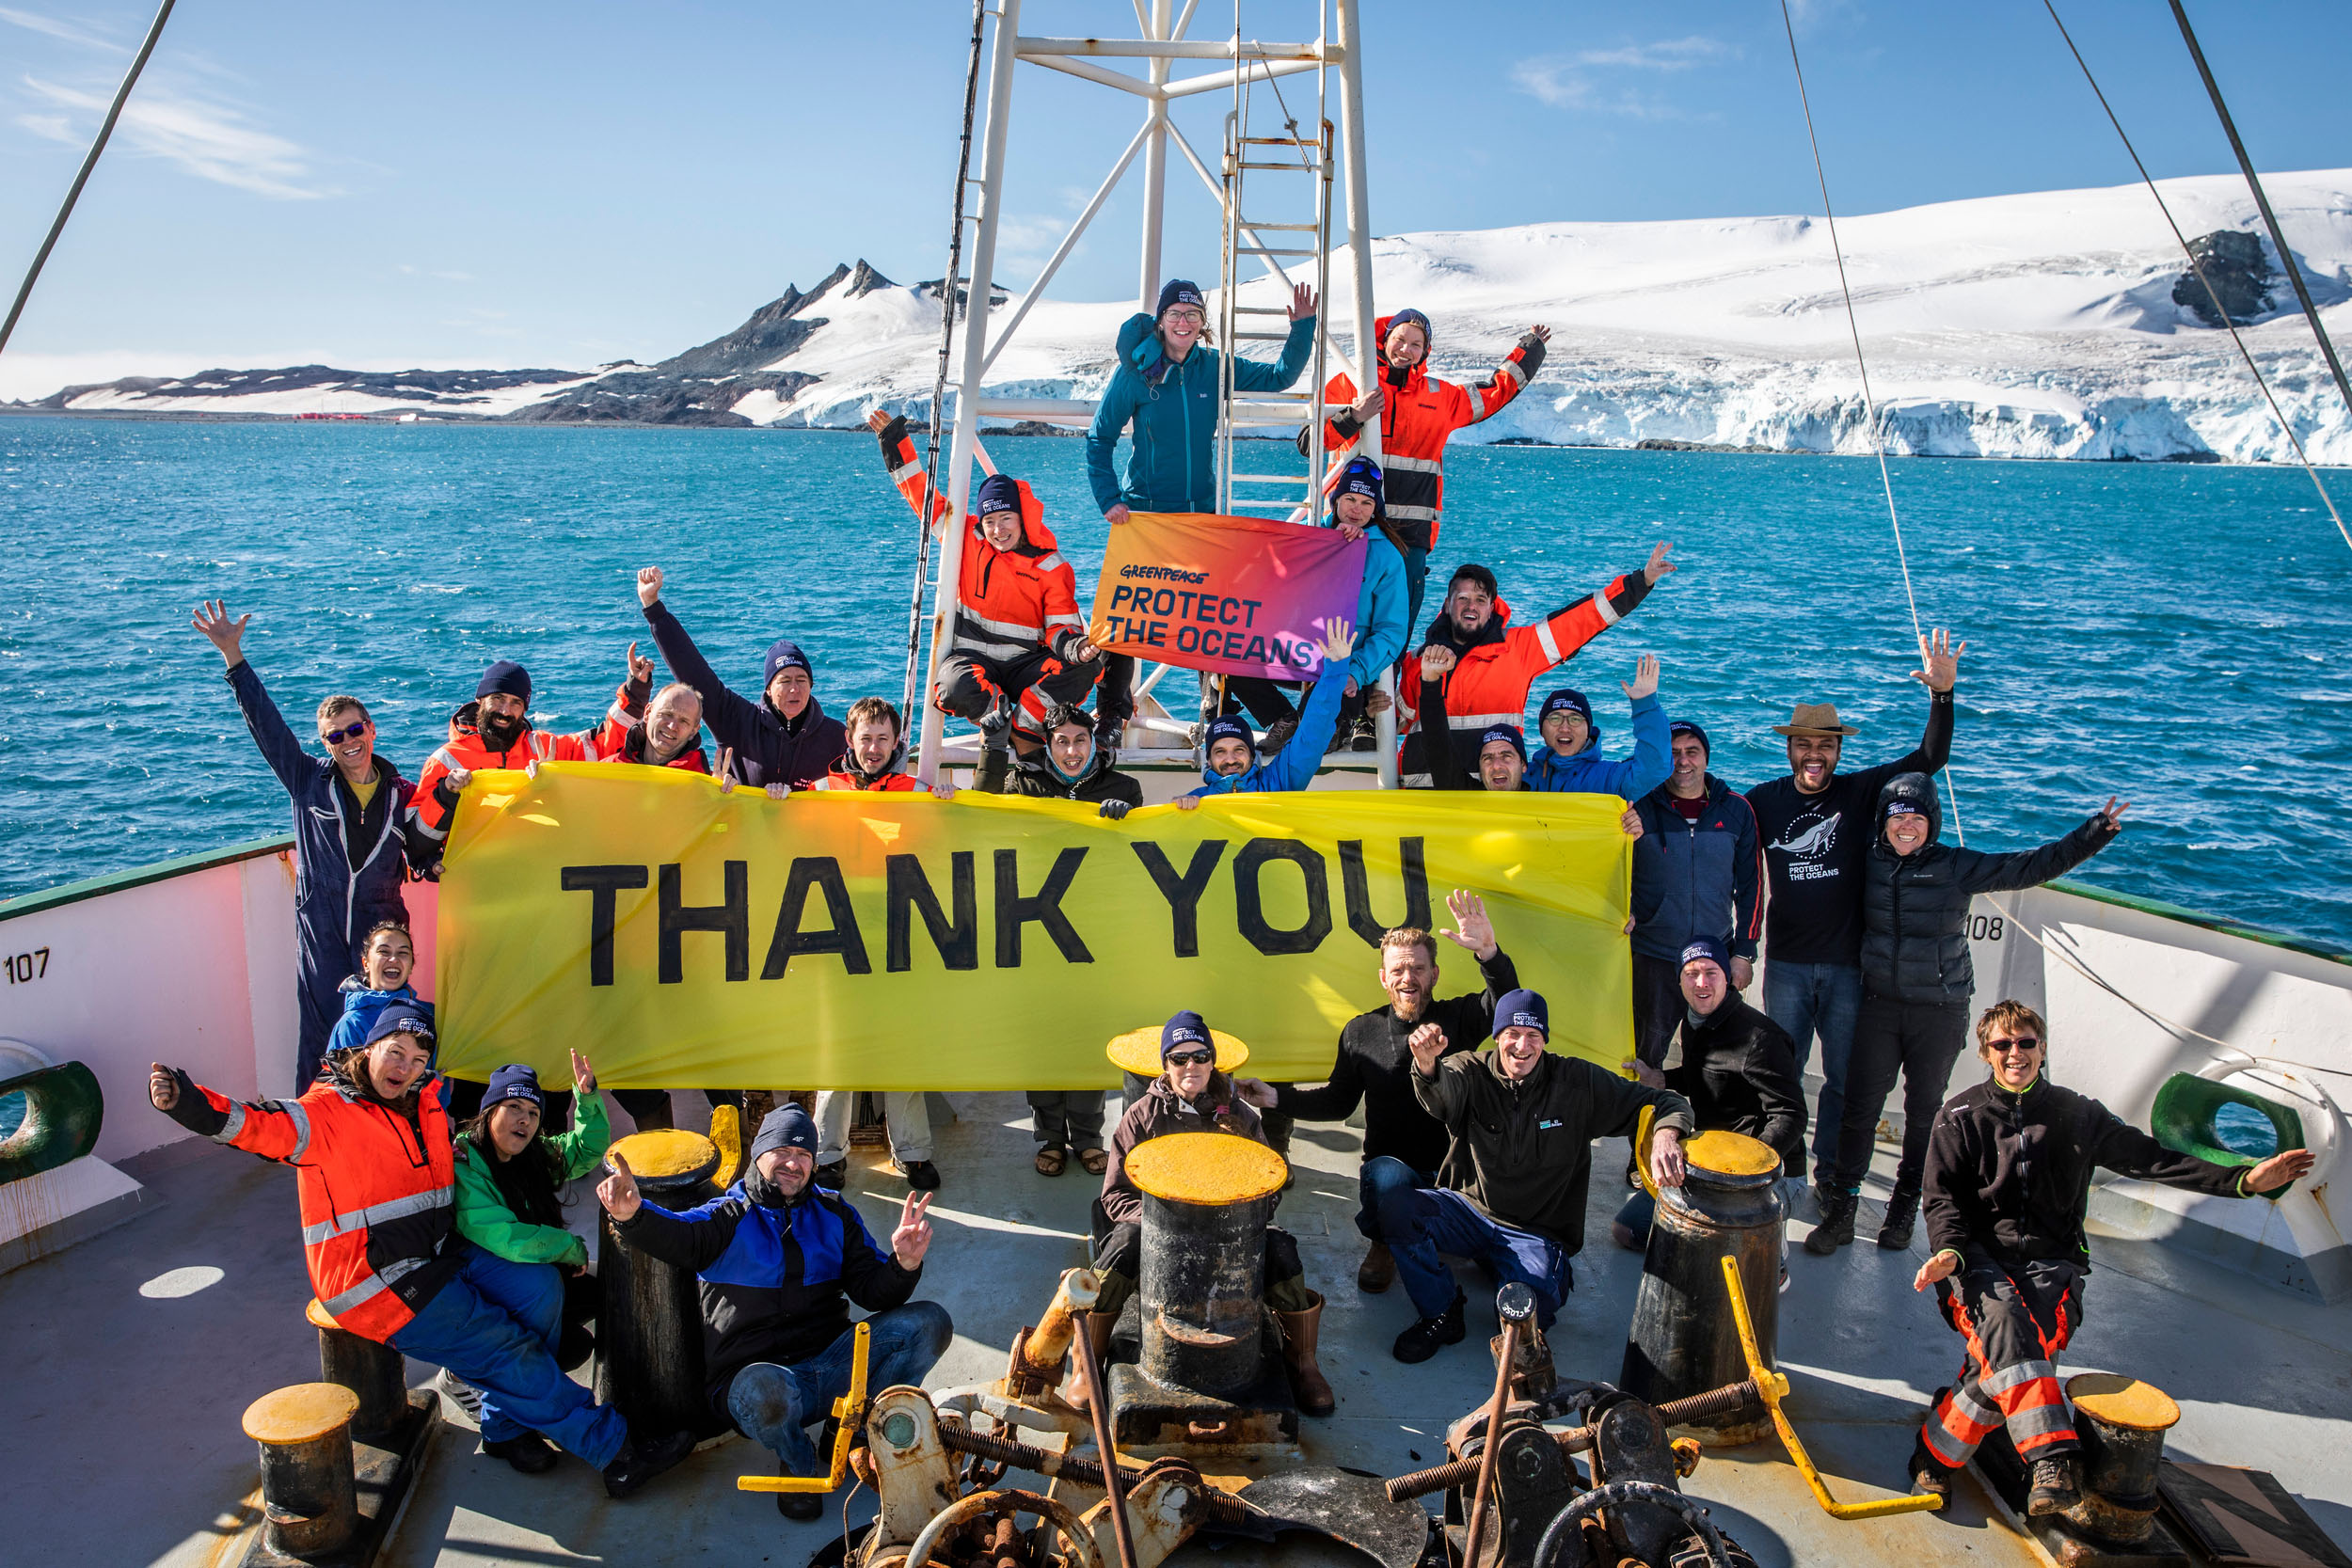 "The crew of a Greenpeace ship wave at the camera while holding a bright yellow banner reading ""Thank you"". A snowy Antarctic landscape is visible in the background."